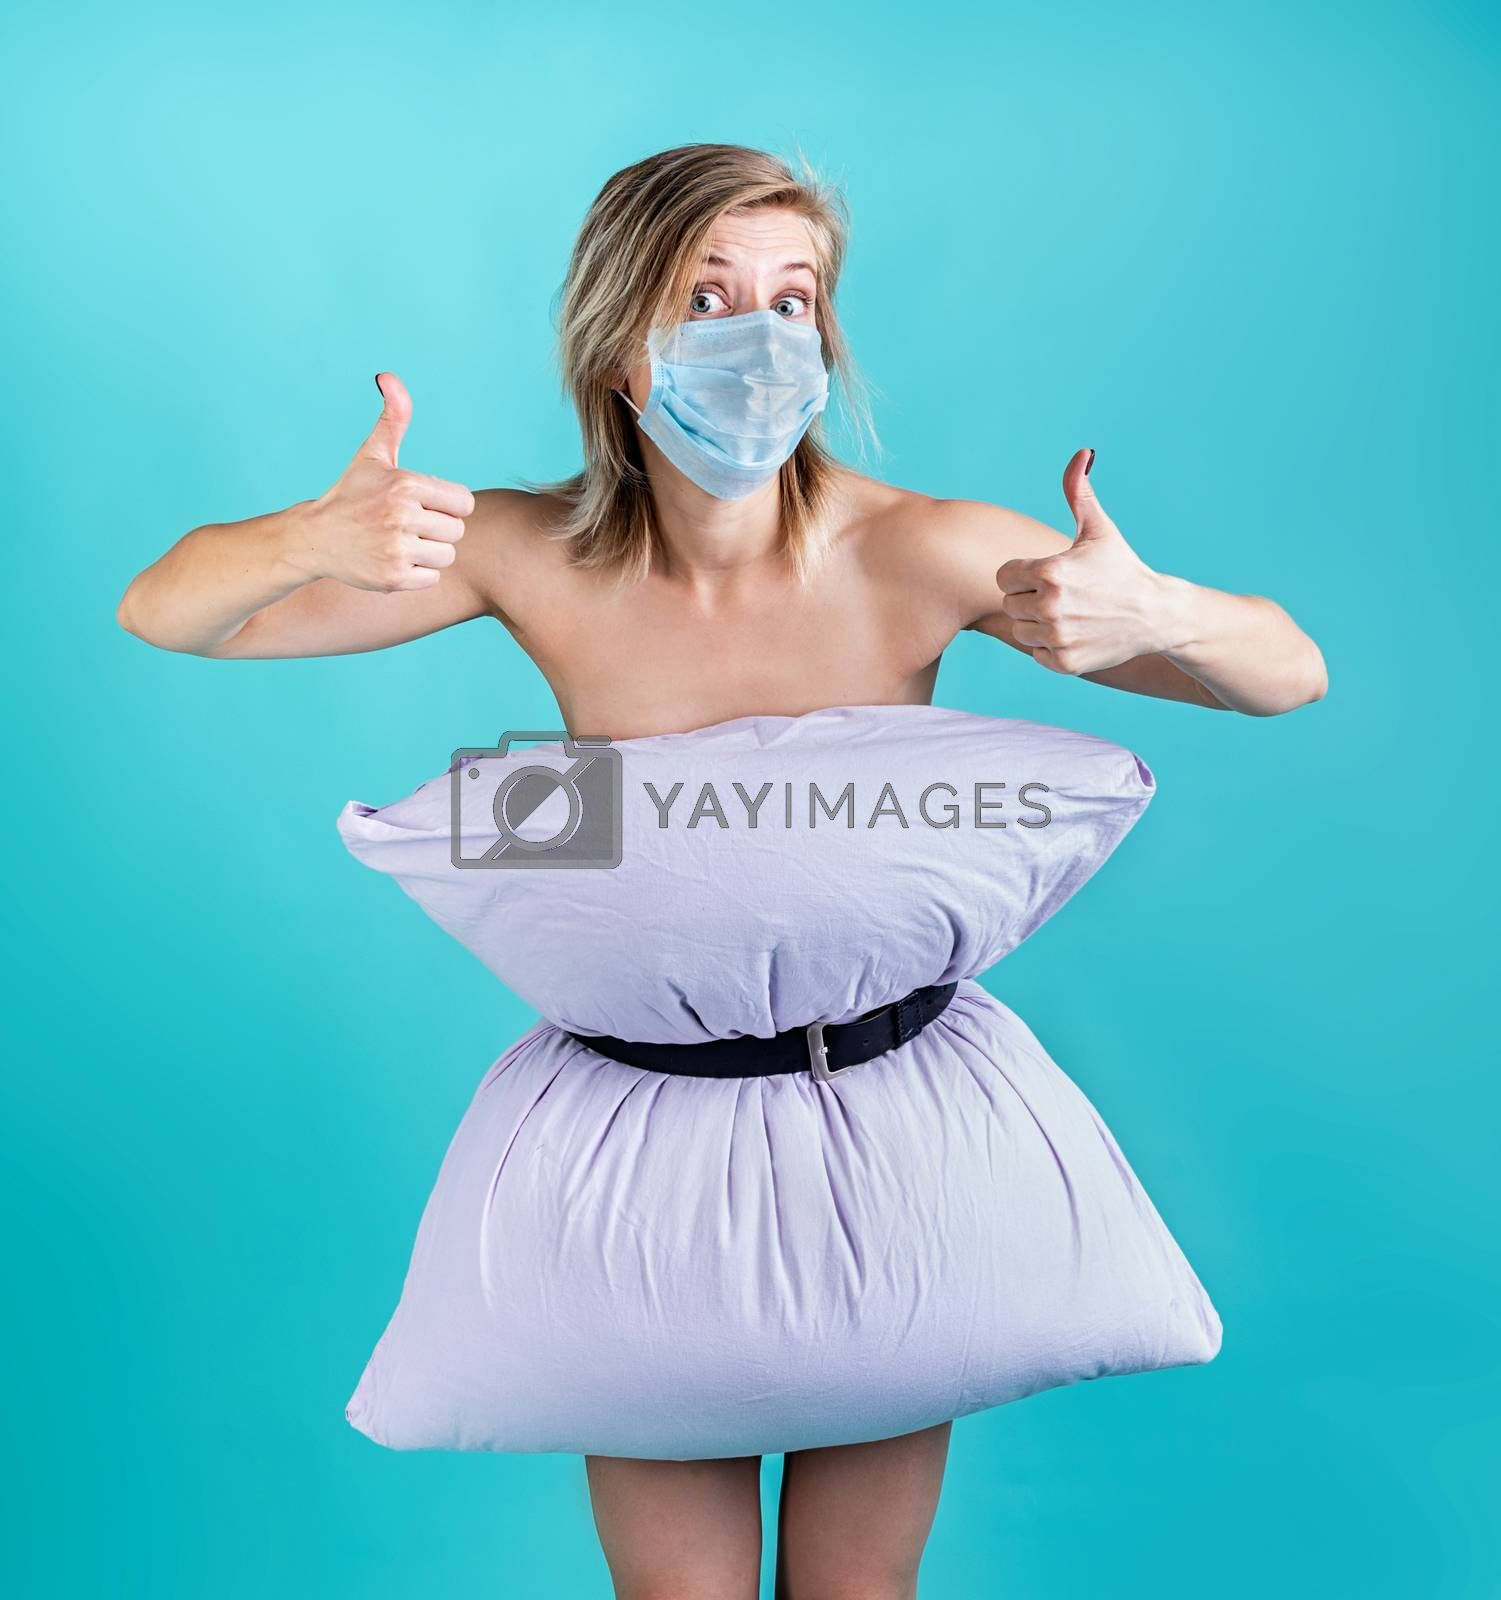 Coronavirus quarantine. Crazy quarantine. Blond woman in pillowdress wearing a mask showing thumbs up isolated on blue background. Pillow challenge outbreak